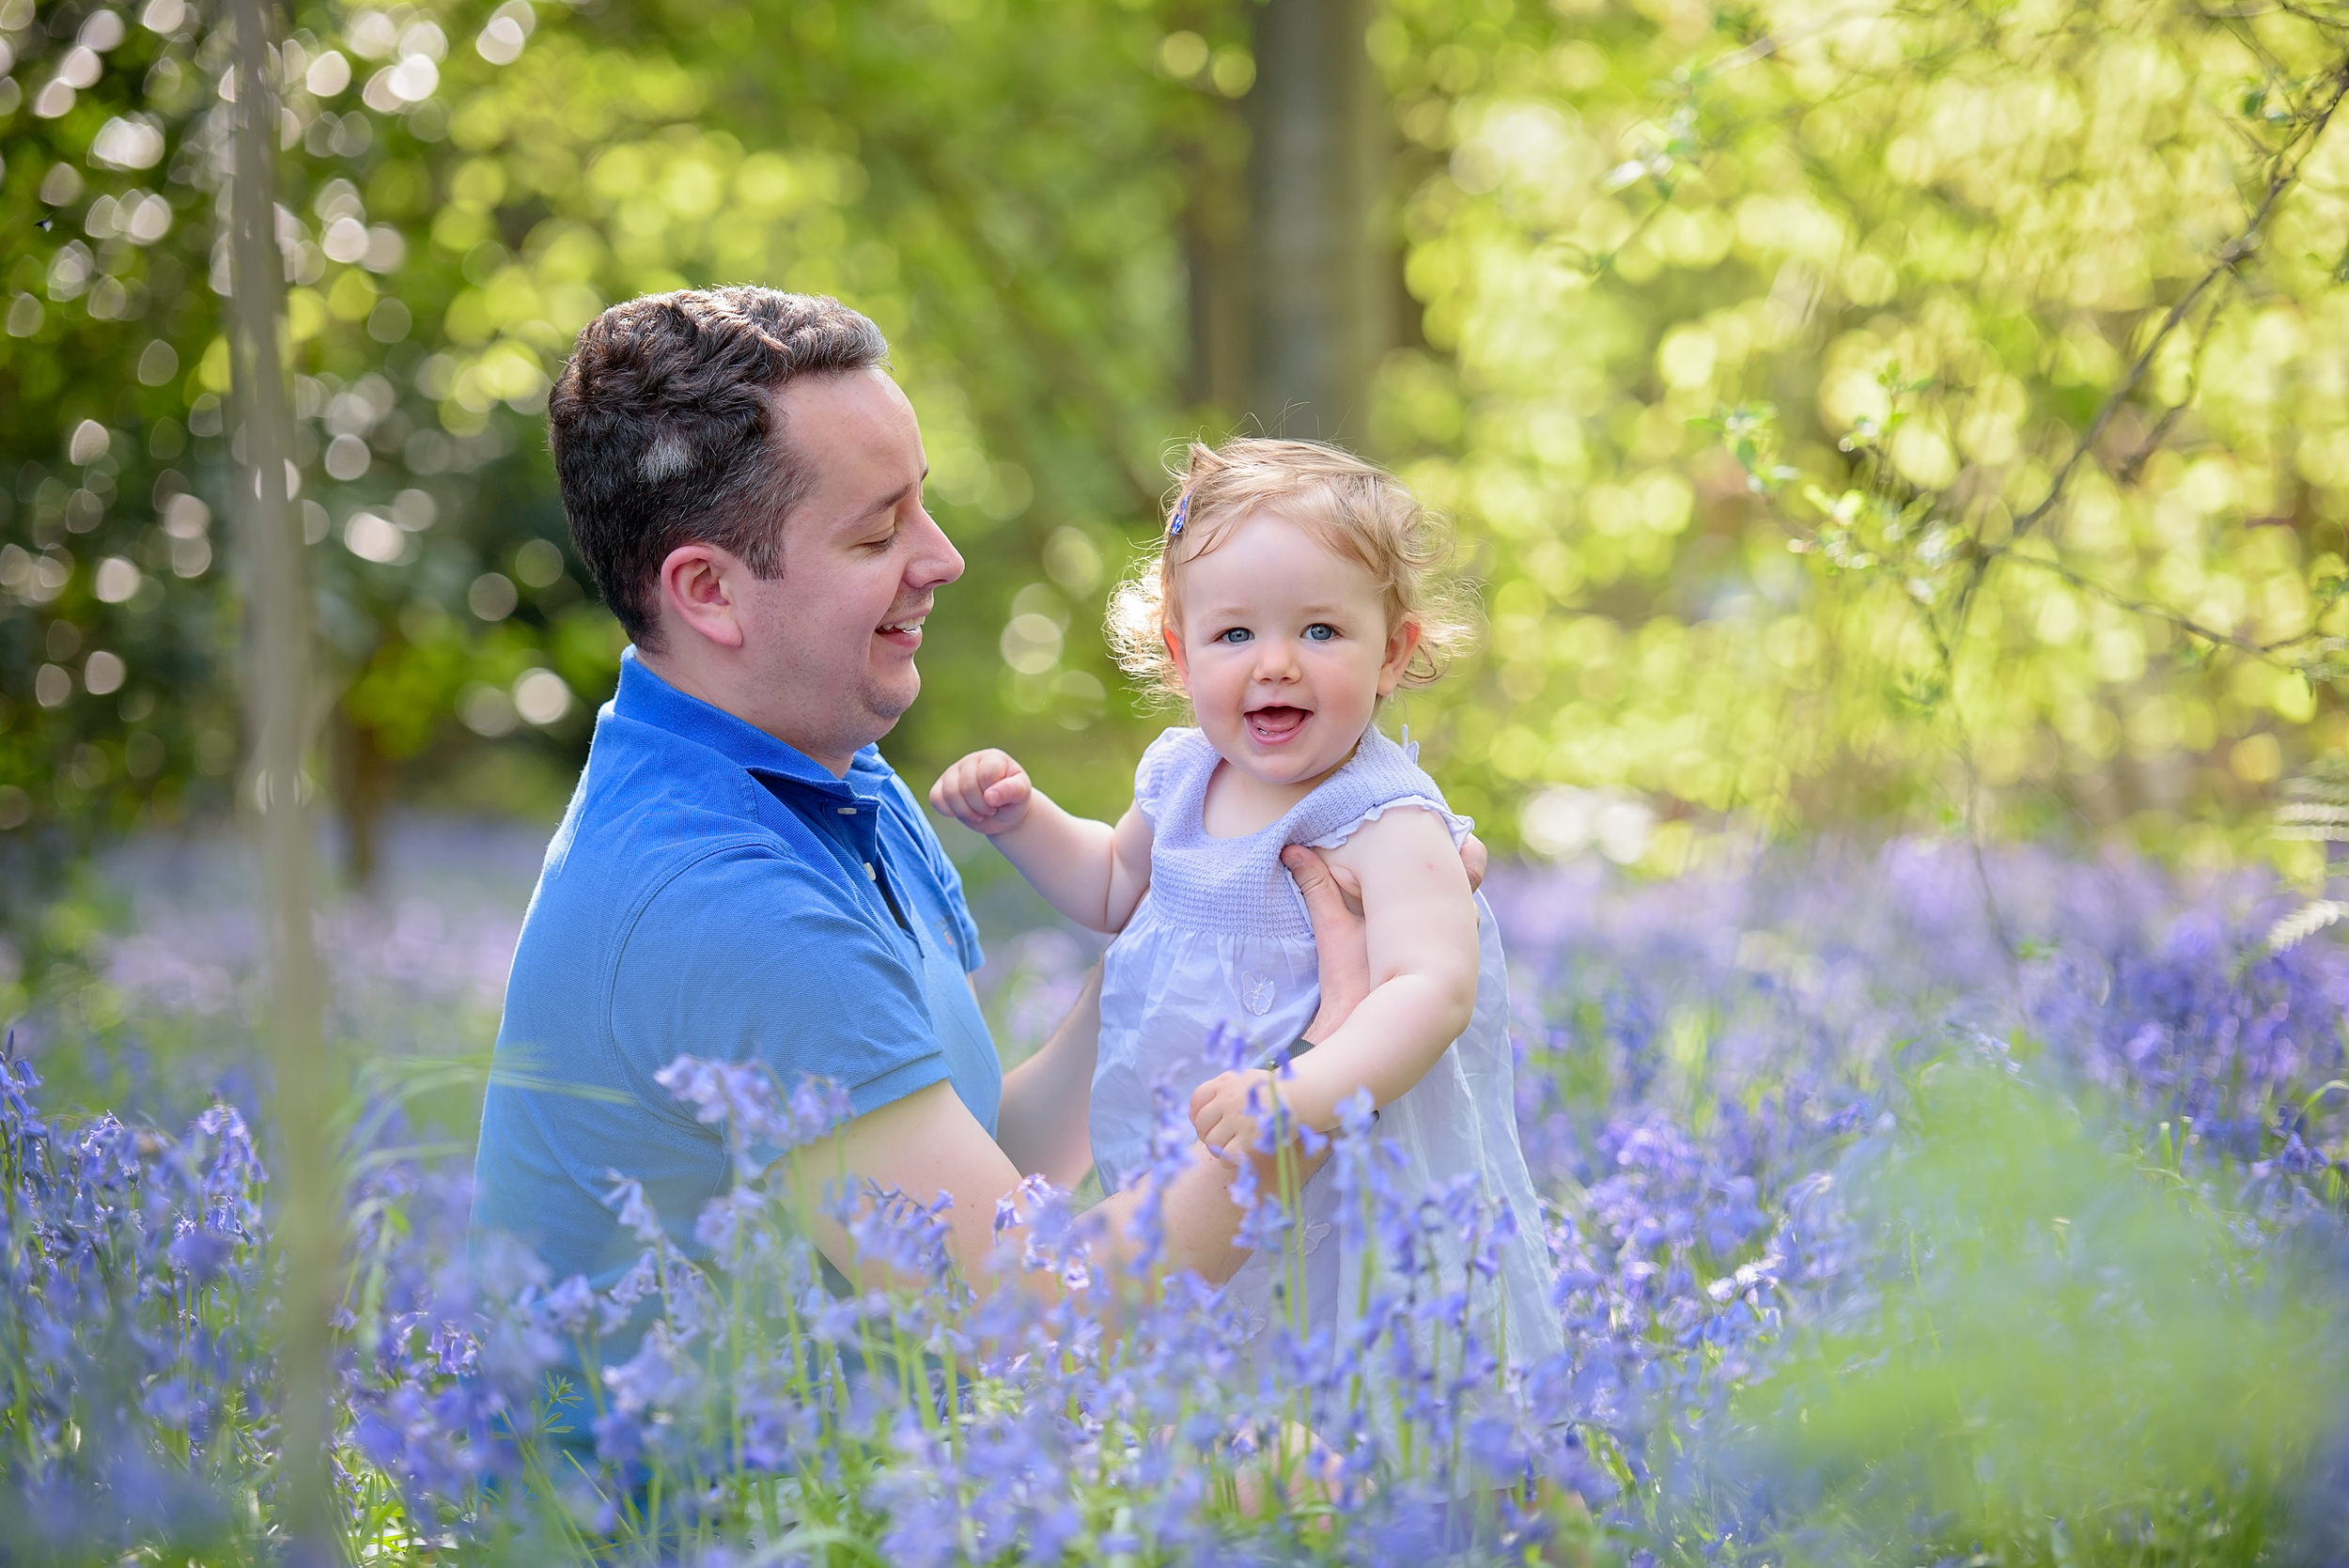 Cute family photoshoot in bluebell woods, London